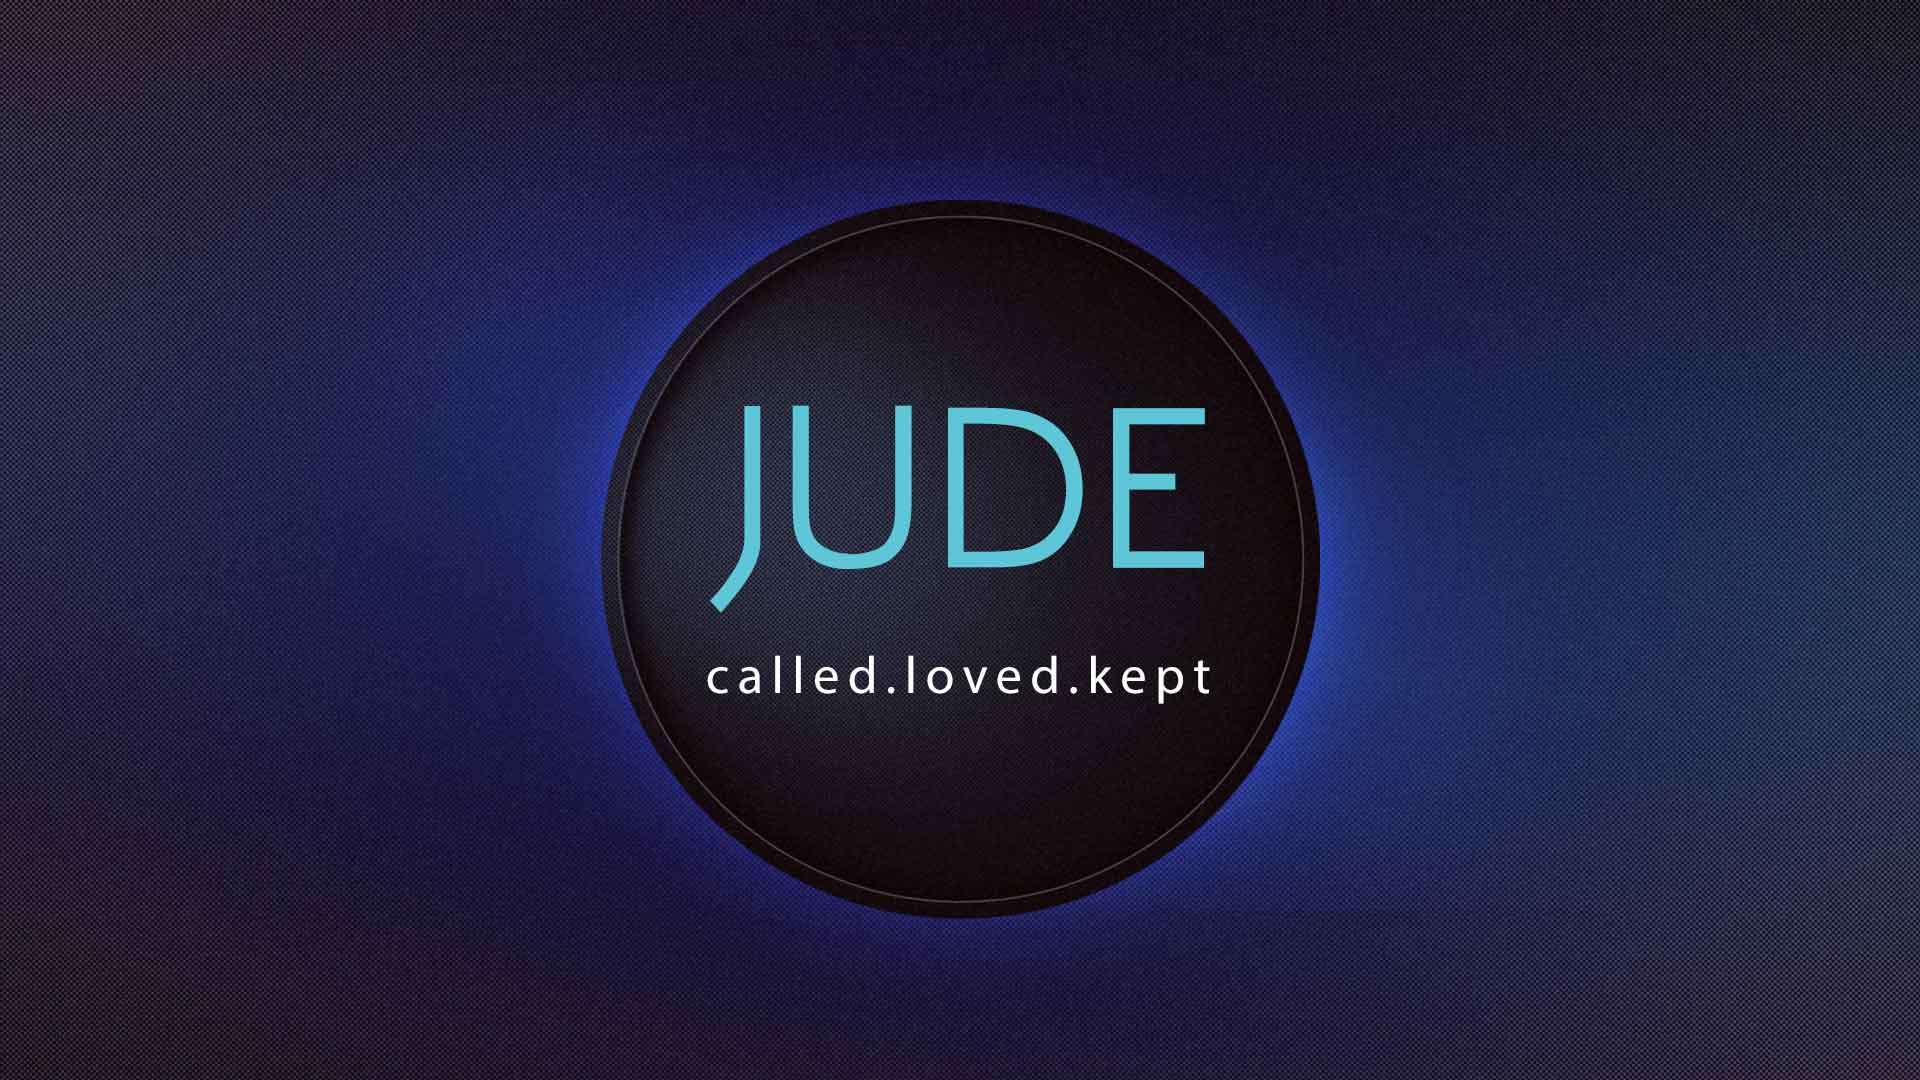 JUDE-TV-Phone-App-Wide1920x1080